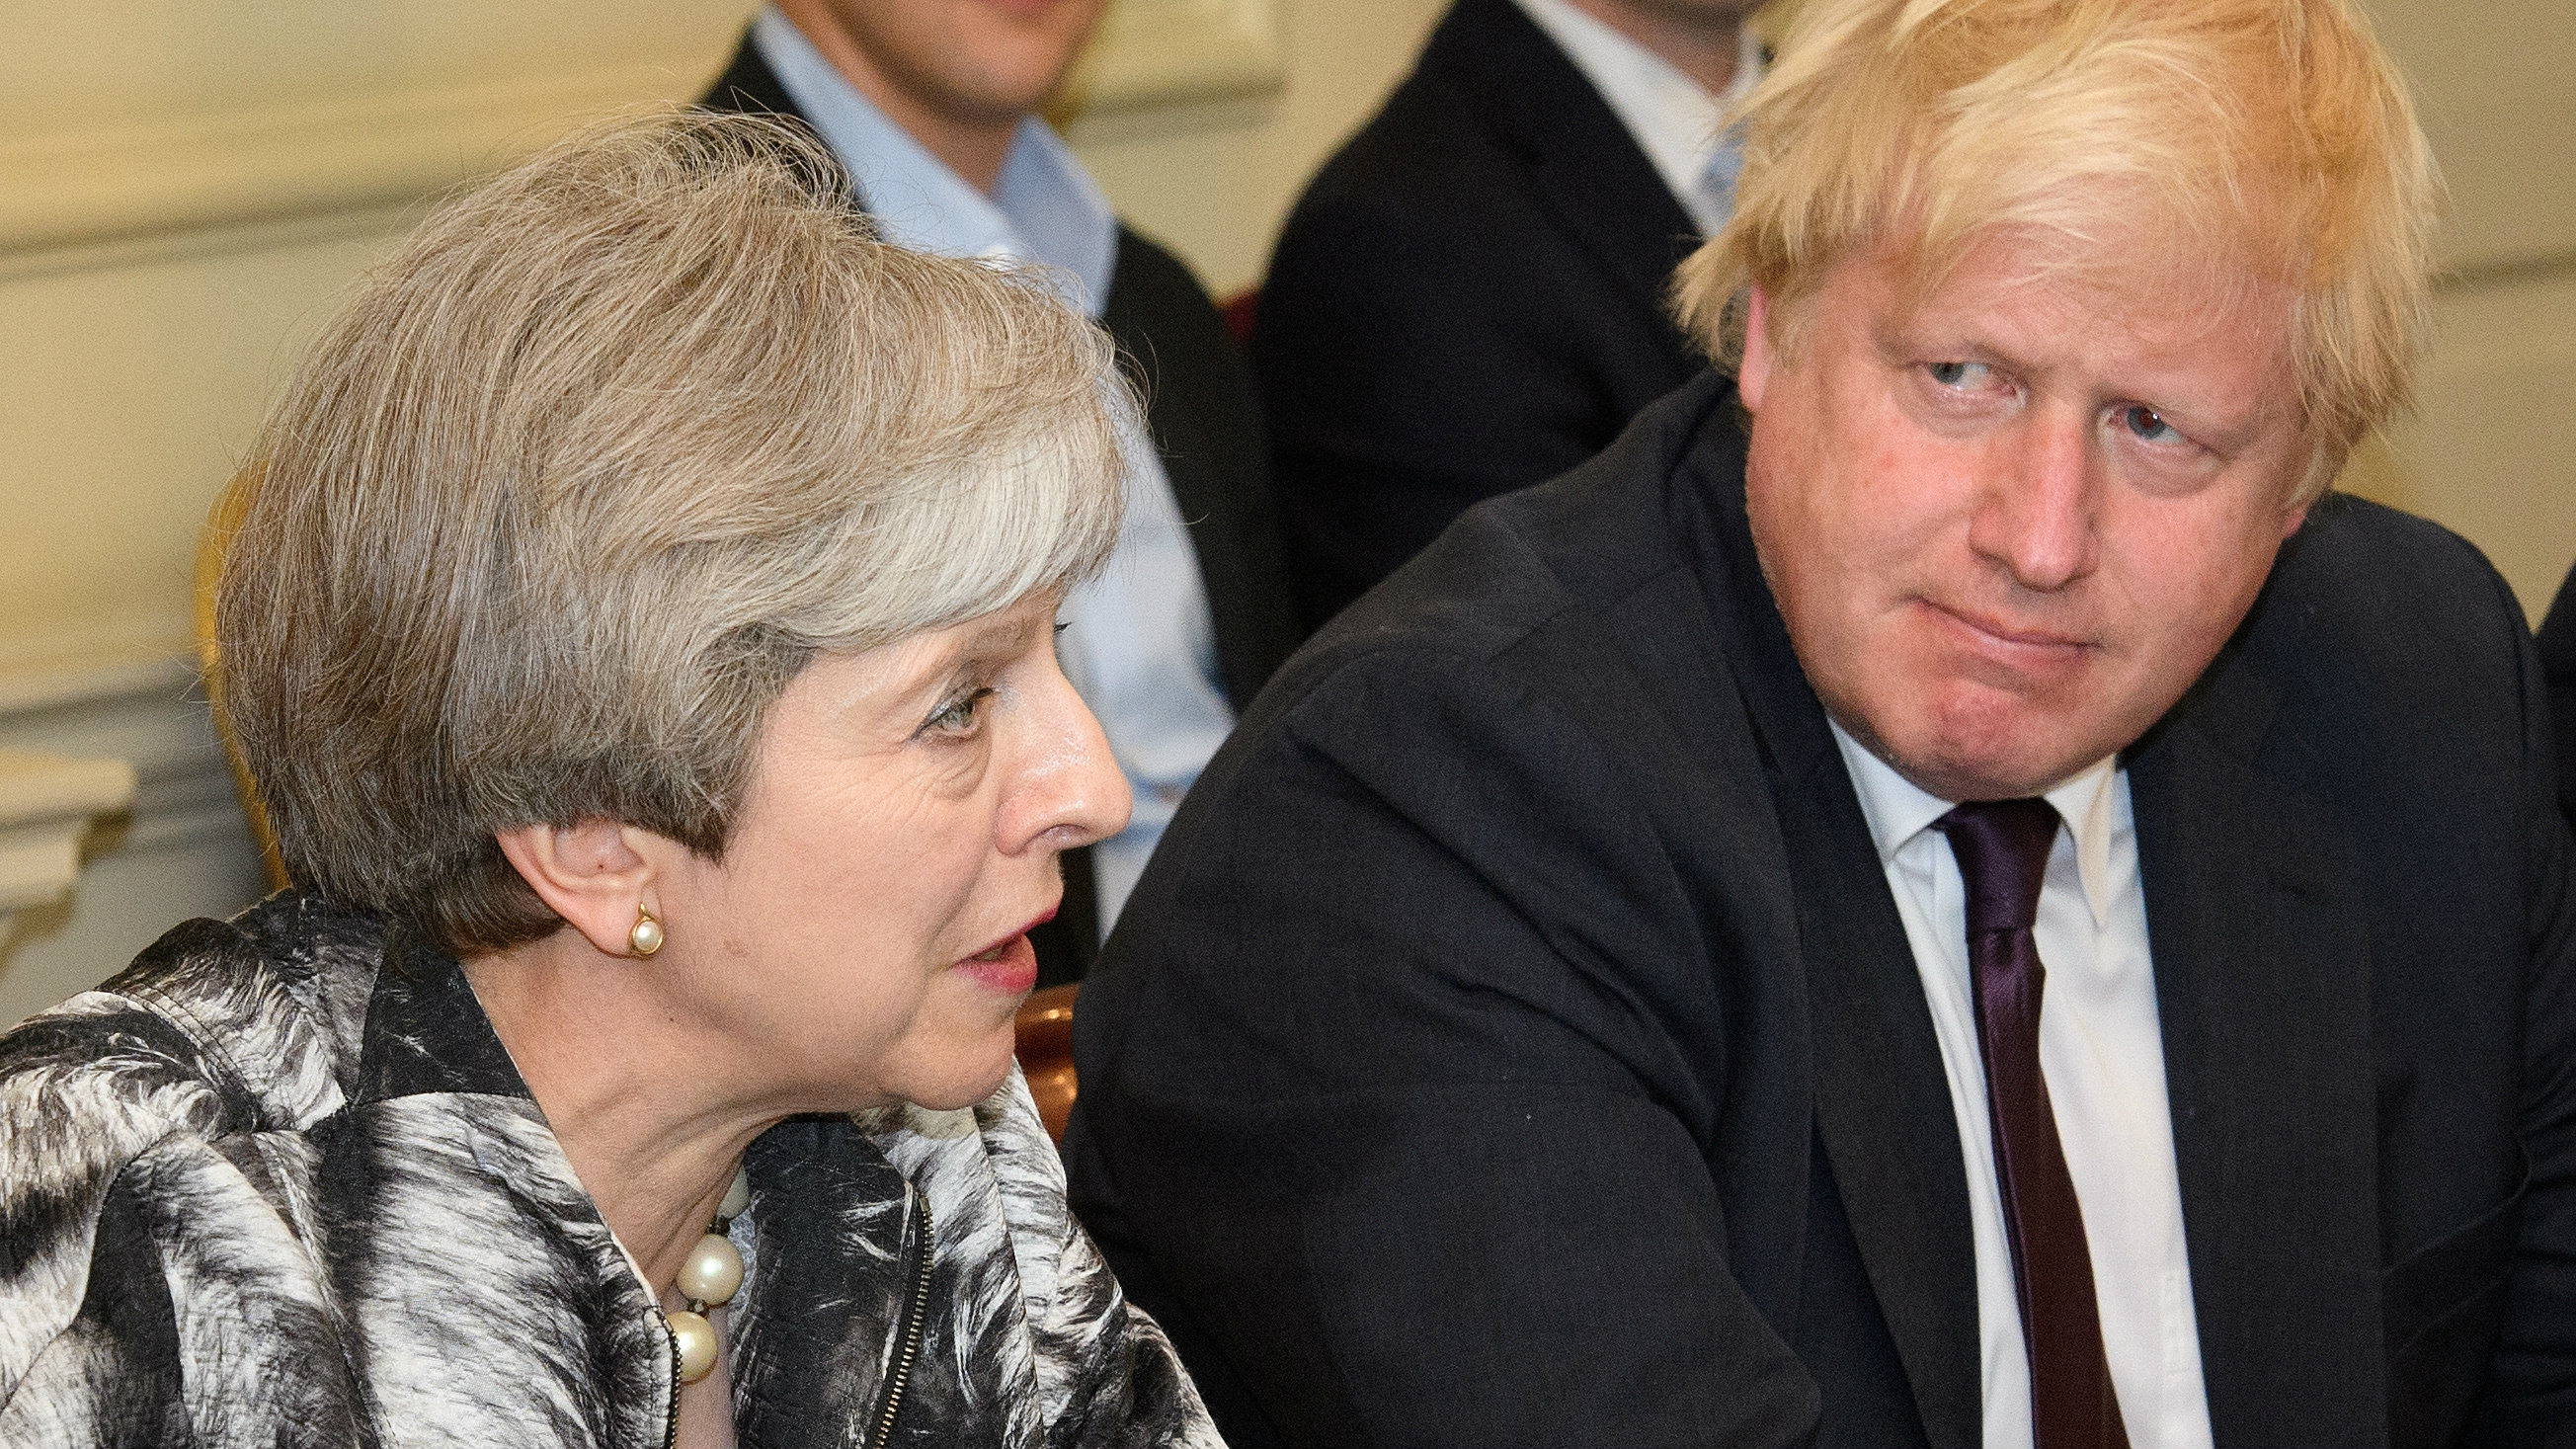 Britain's Prime Minister Theresa May sits next to Britain's Foreign Secretary Boris Johnson as she holds the first Cabinet meeting following the general election at 10 Downing Street, in London June 12, 2017.